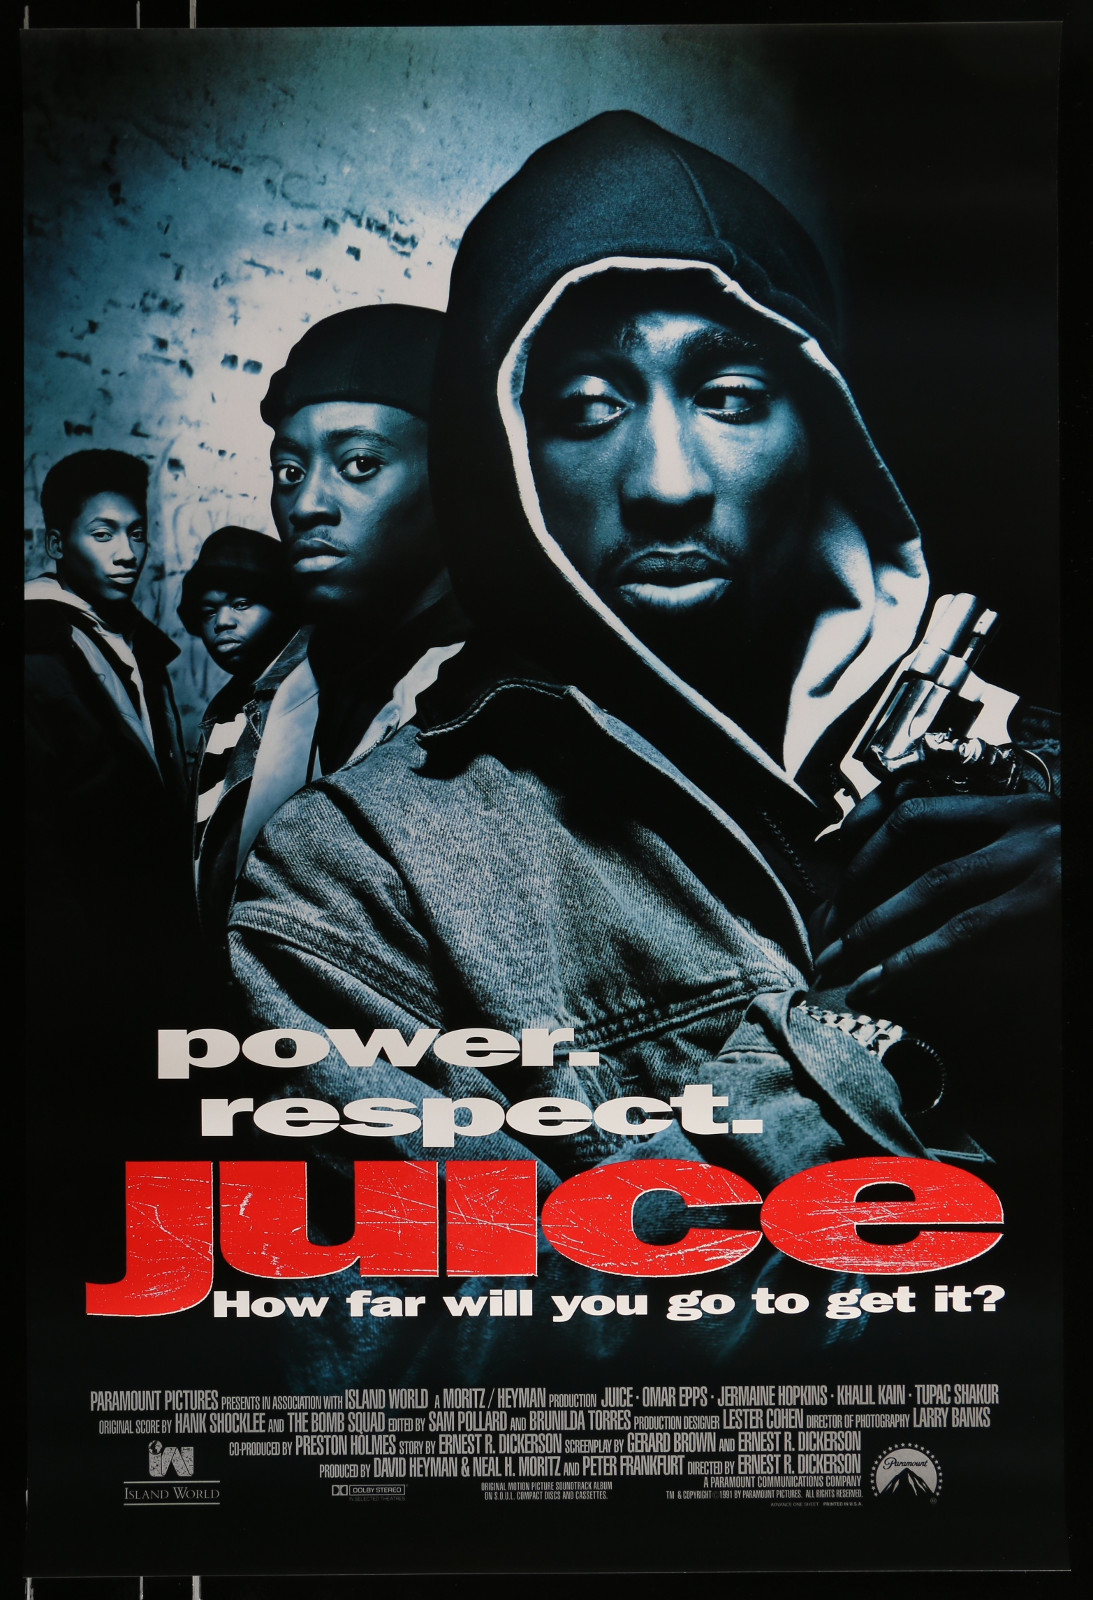 Juice 2A364 A Part Of A Lot 29 Unfolded Mostly Single-Sided 27X40 One-Sheets '90S-00S Great Movie Images!